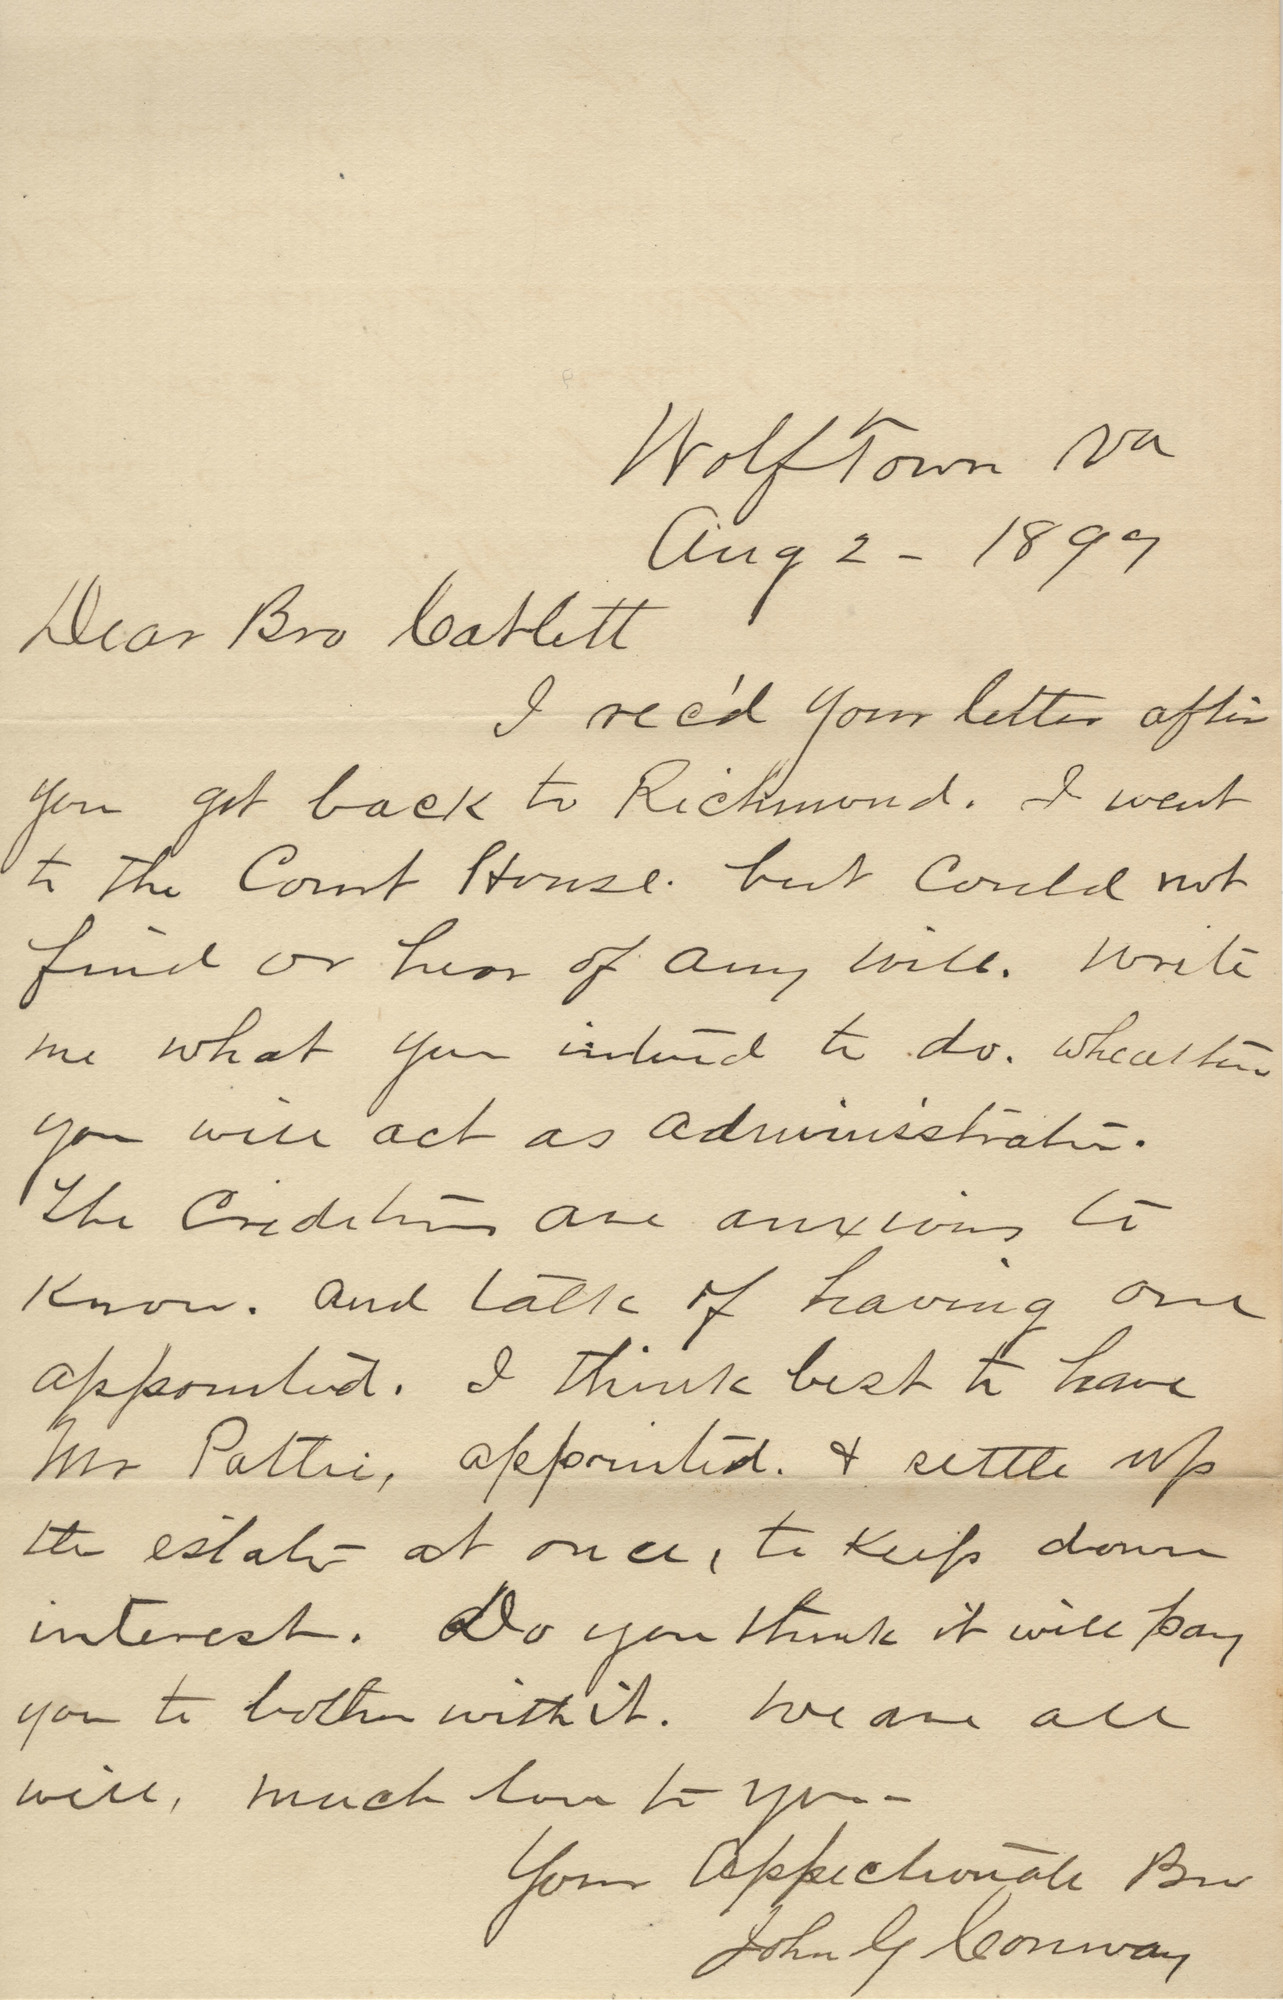 http://spec.lib.vt.edu/pickup/Omeka_upload/Ms2012-039_ConwayCatlett_F2_Letter_1897_0802.jpg